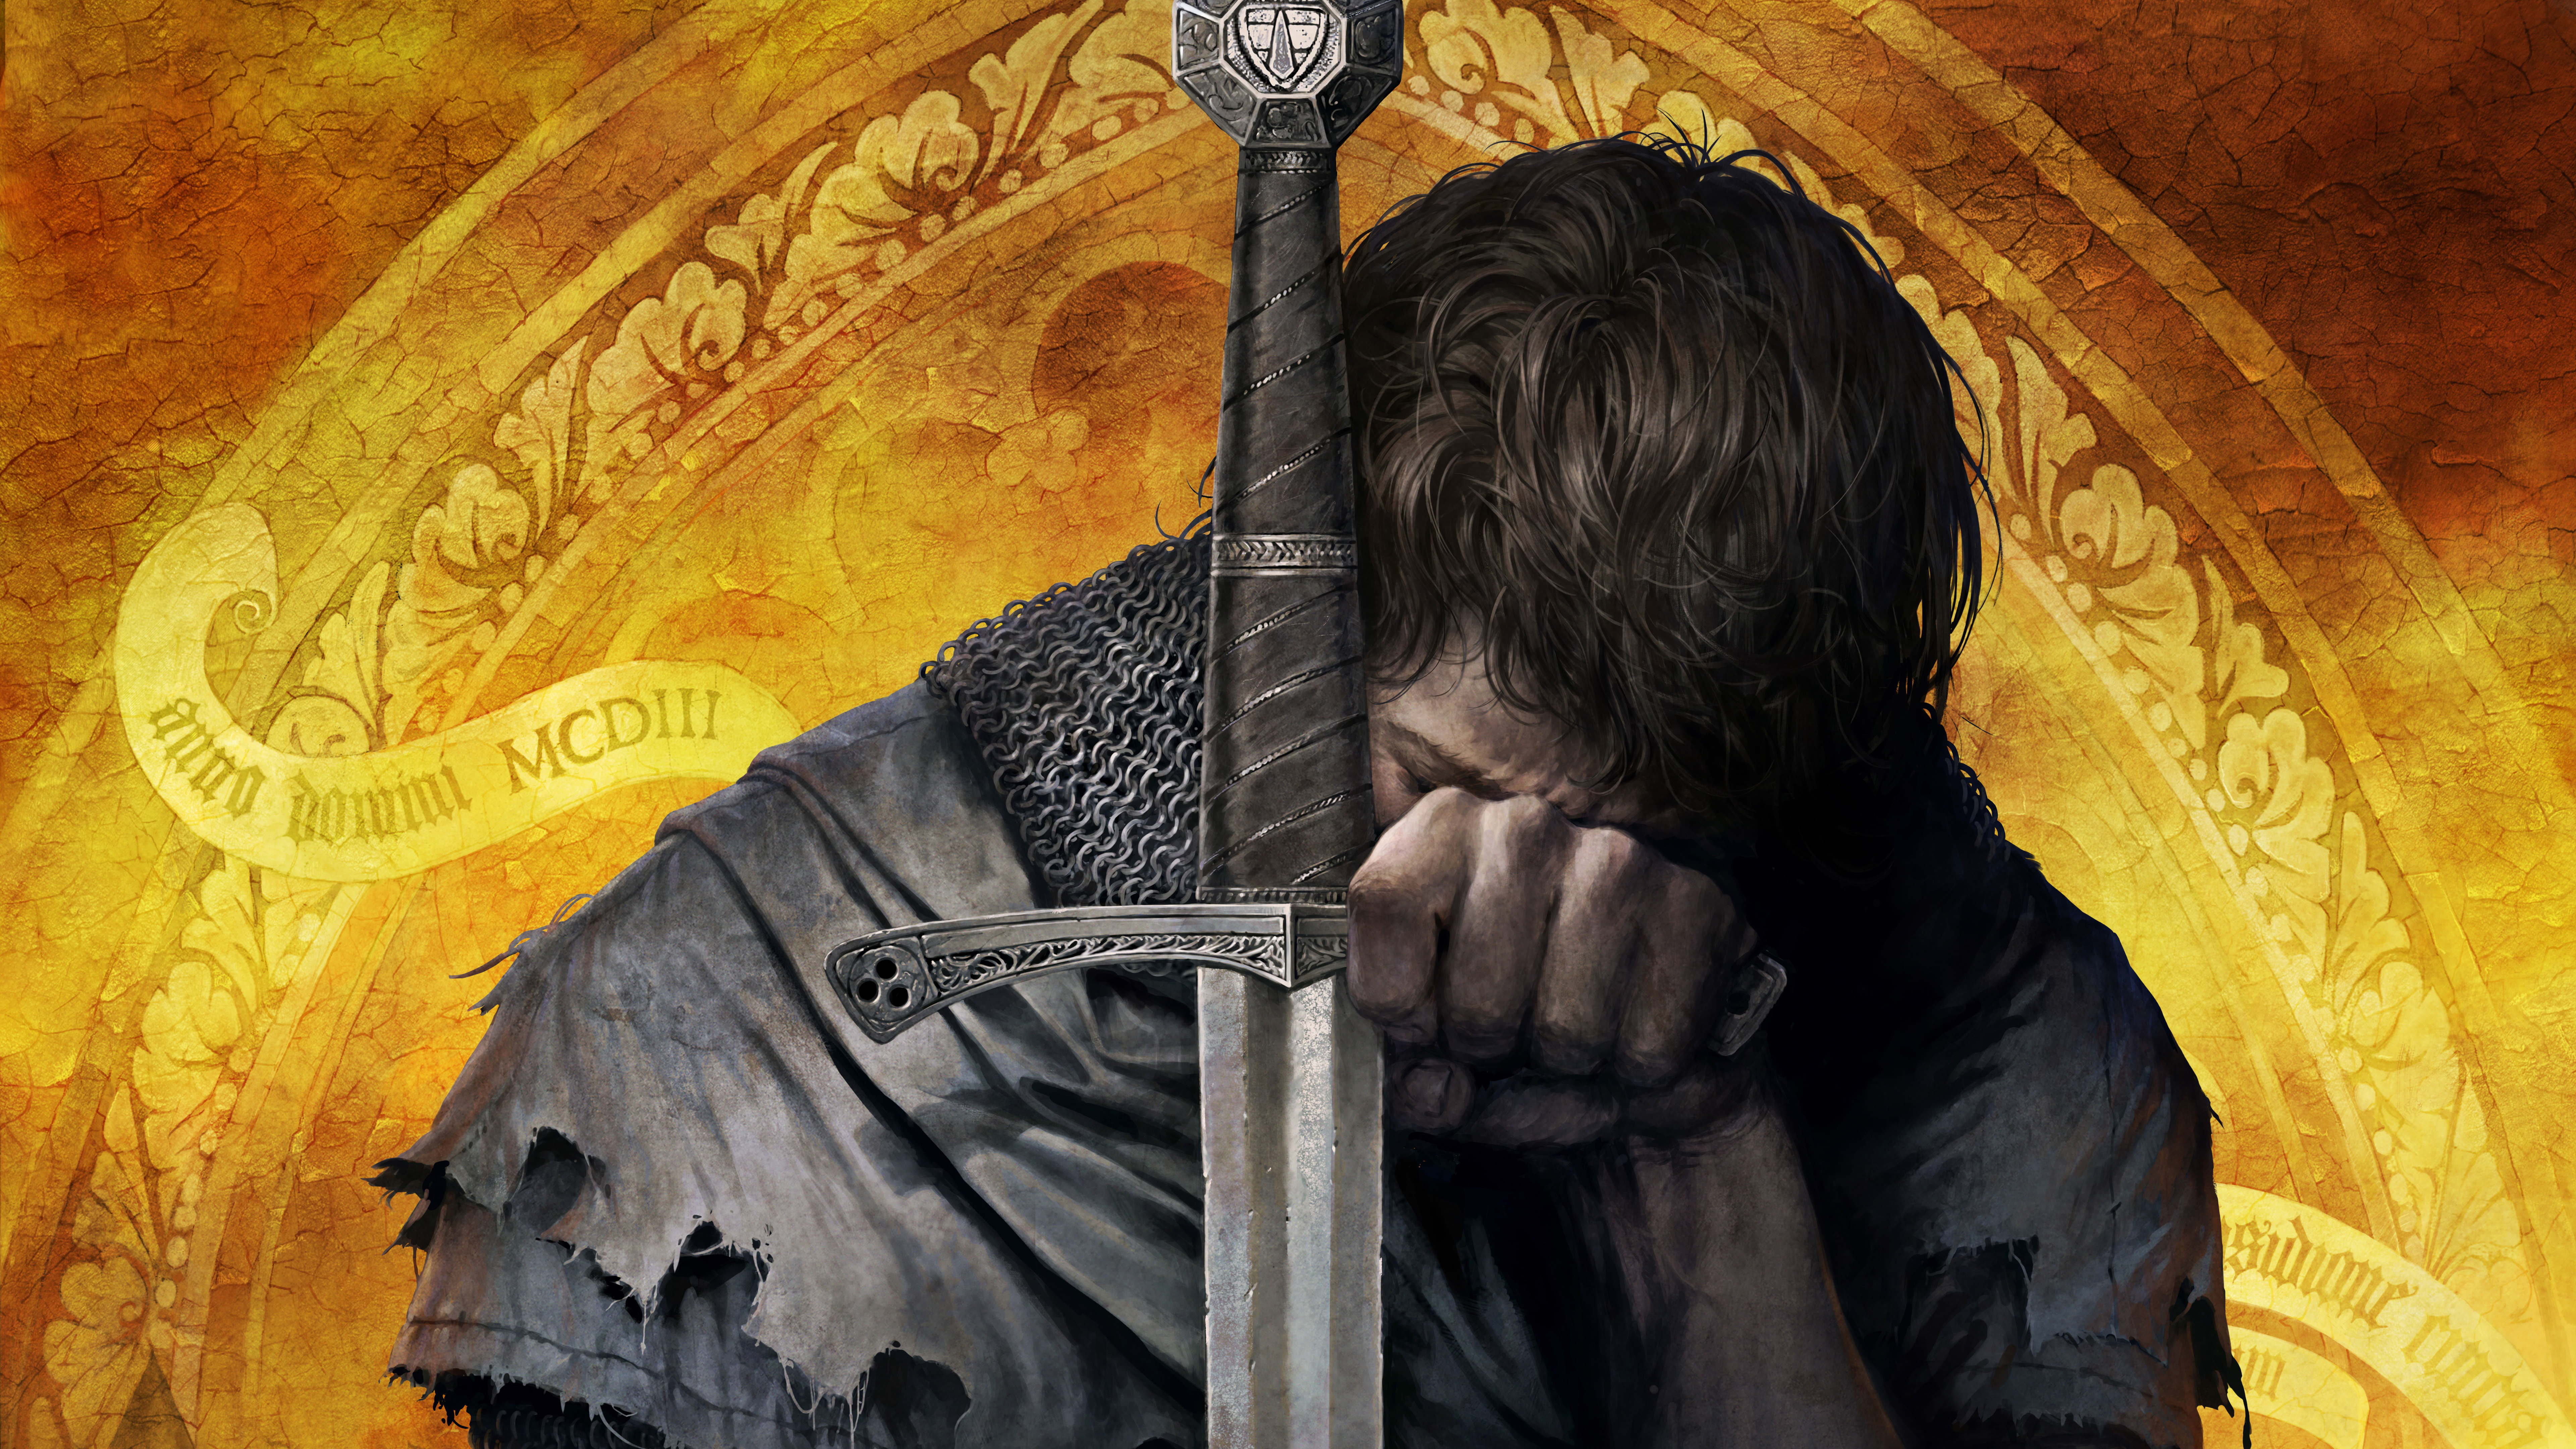 Kingdom Come Deliverance HD Wallpapers and Background Images 7680x4320